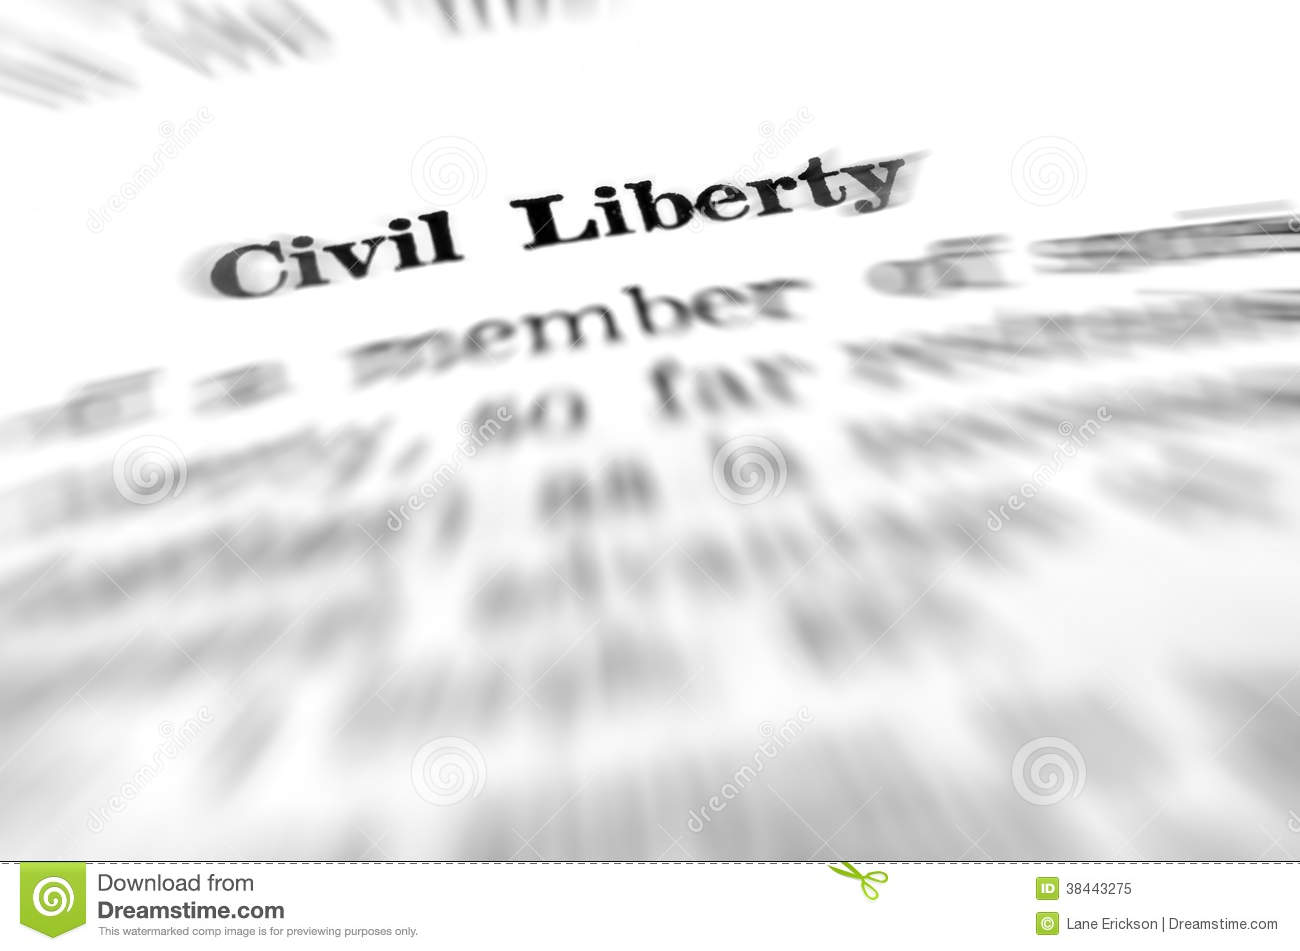 definition of civil liberty and law stock image - image of business